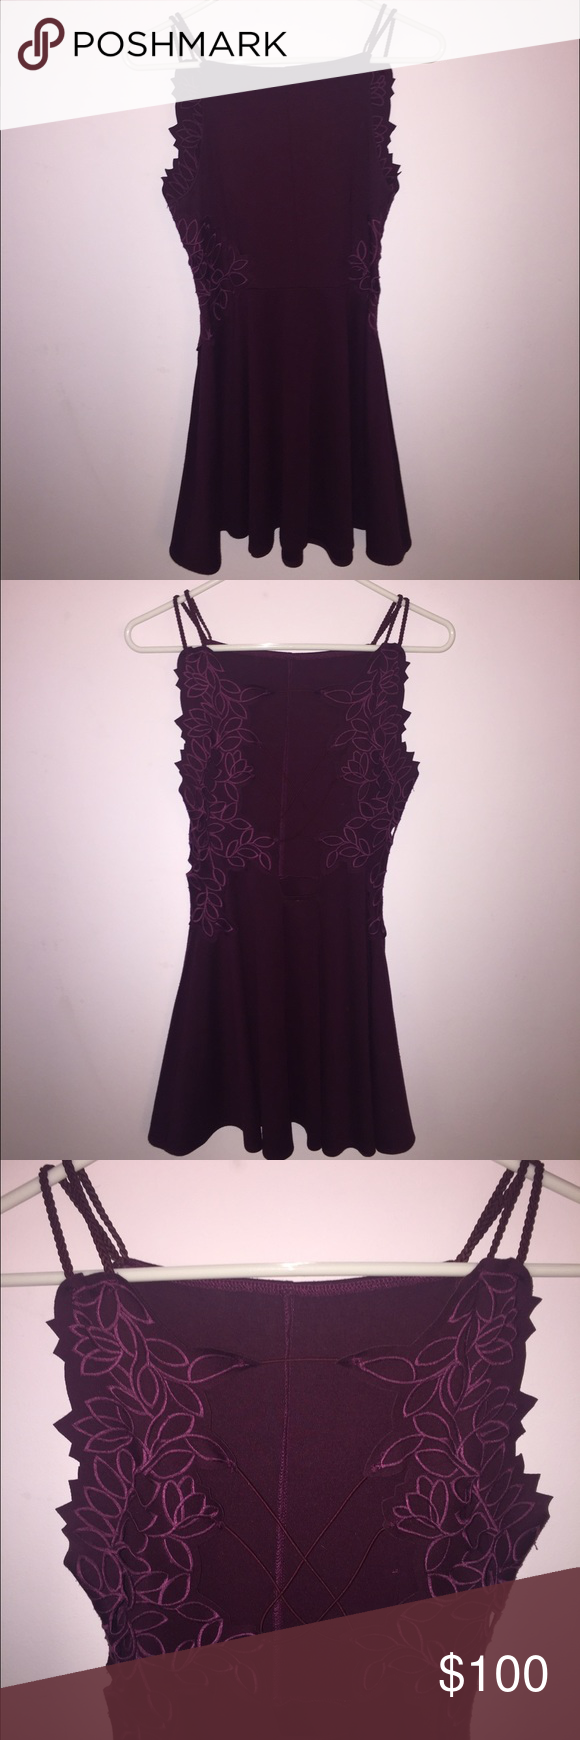 Free People open strappy back dress used once Free People Dresses Mini